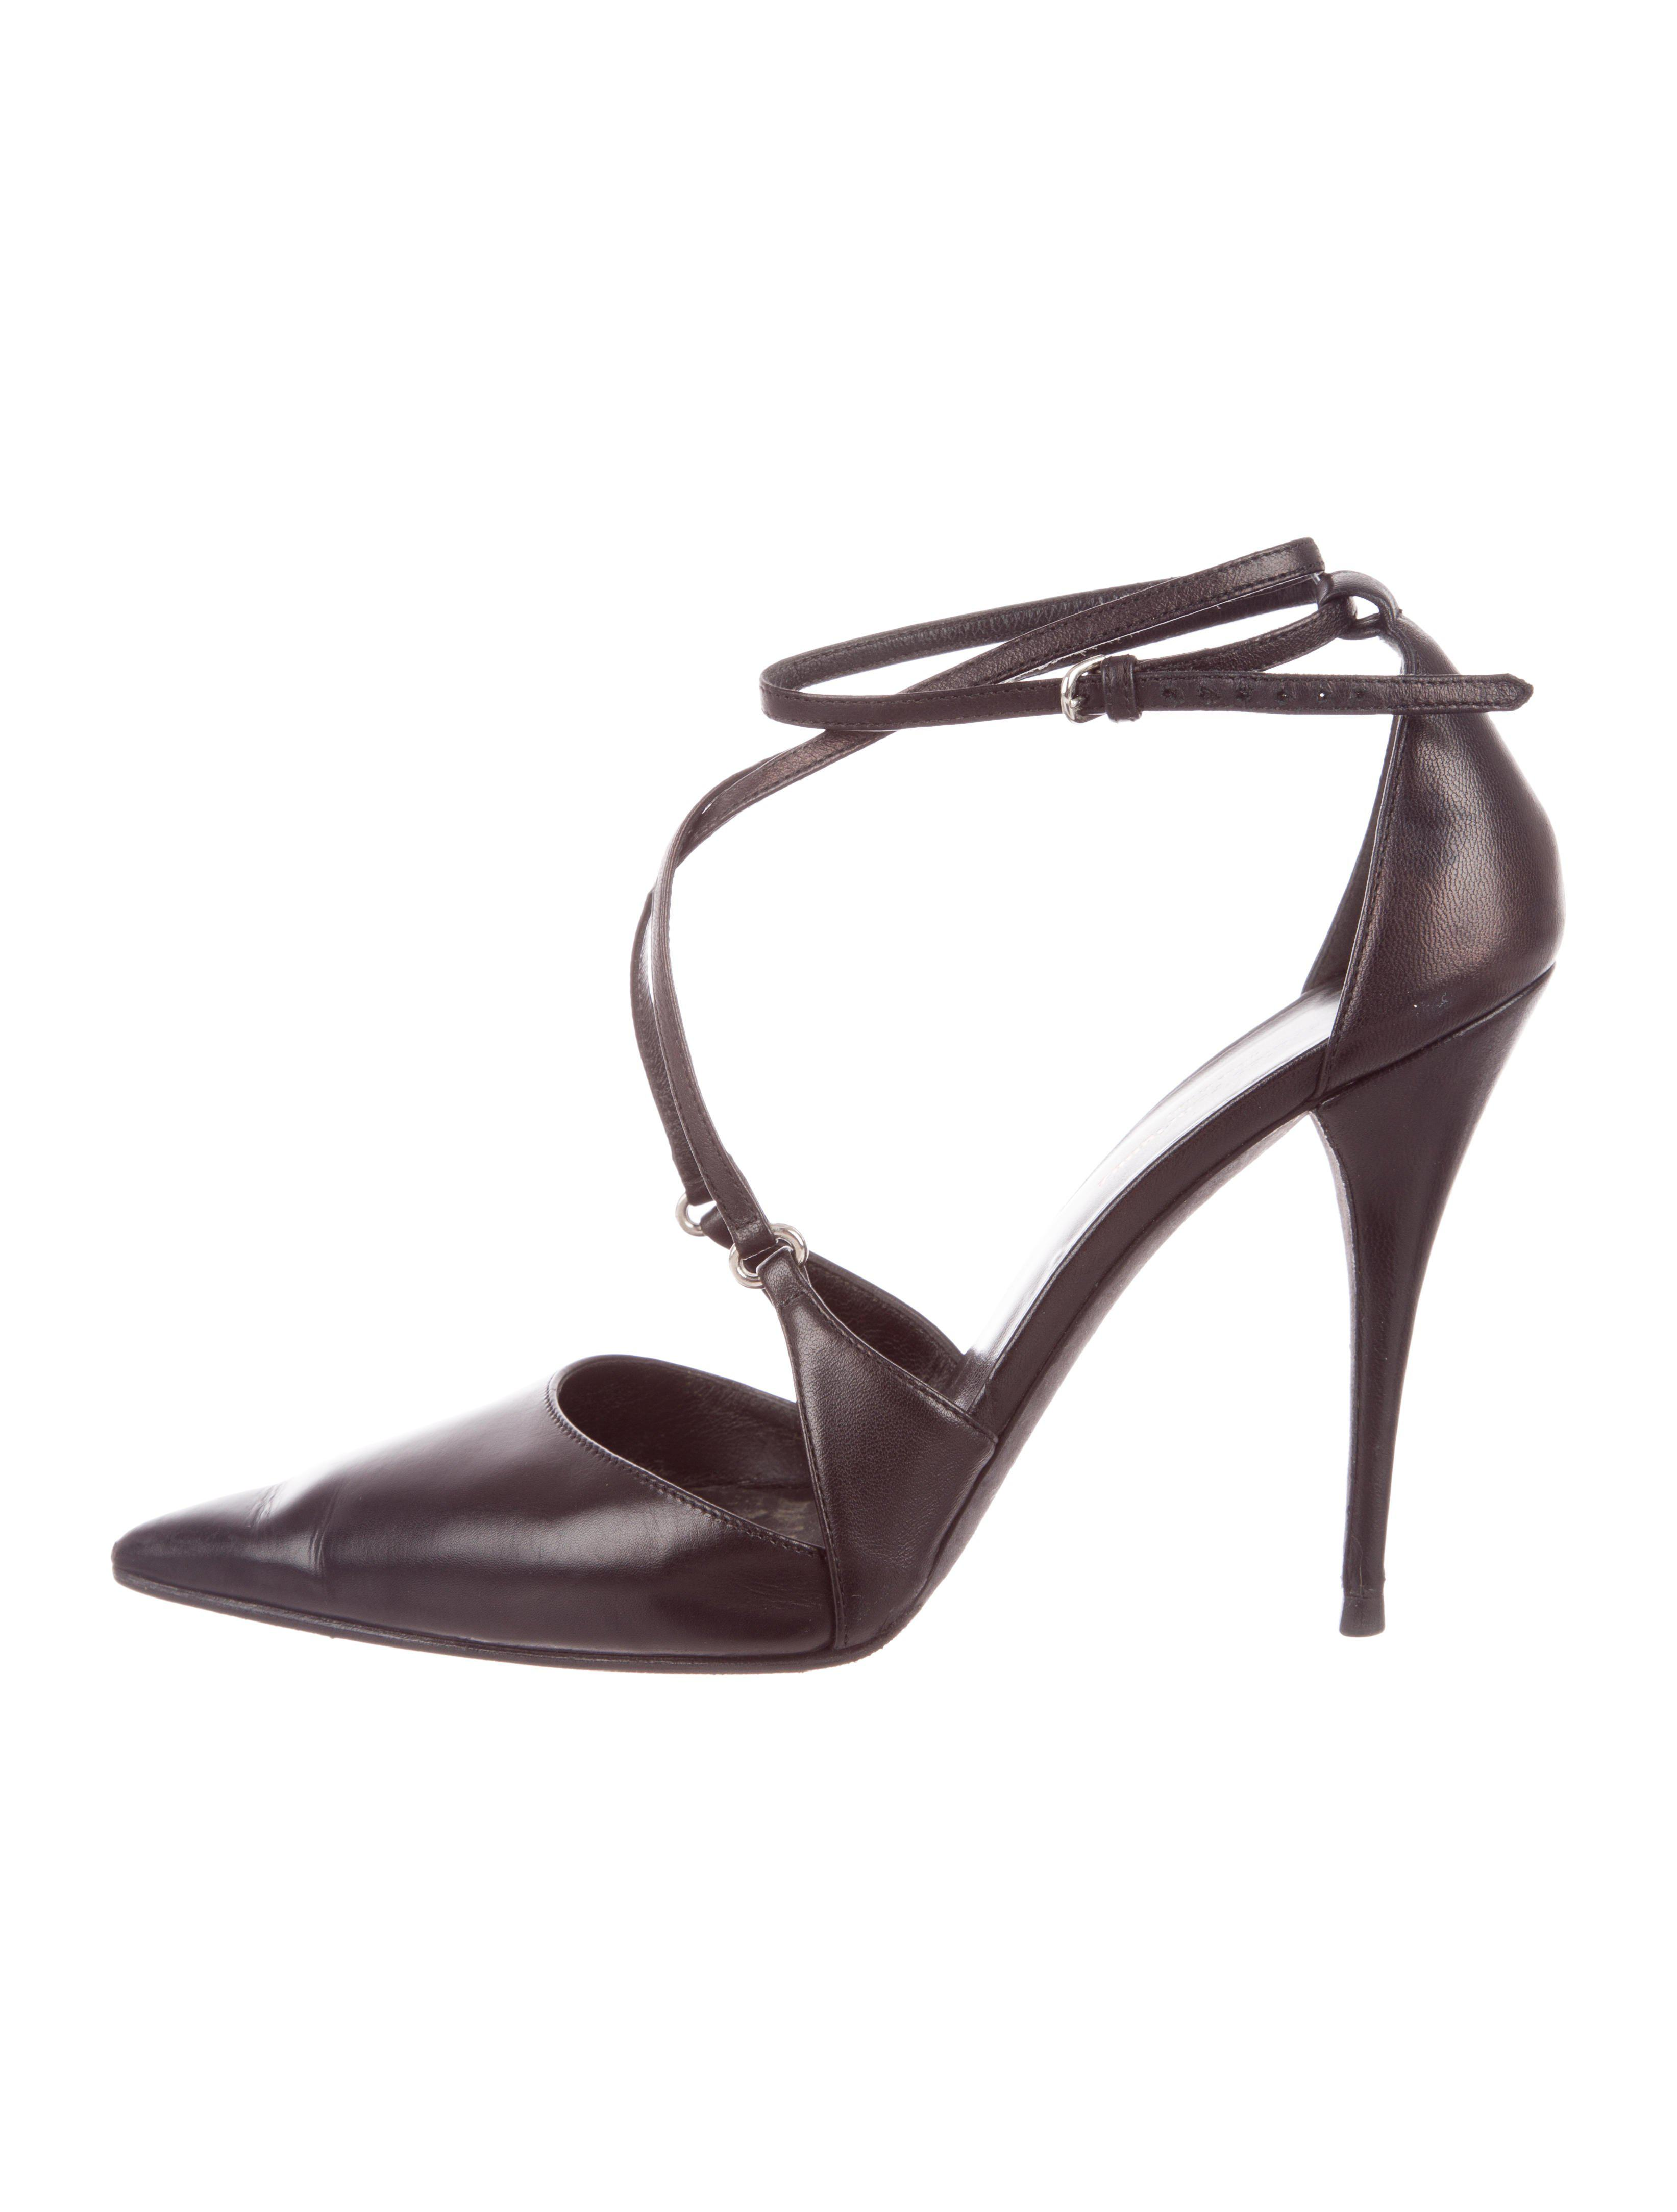 sale low shipping Narciso Rodriguez Pointed-Toe Leather Pumps buy cheap factory outlet tumblr for sale best prices online low price fee shipping for sale ubNMVL